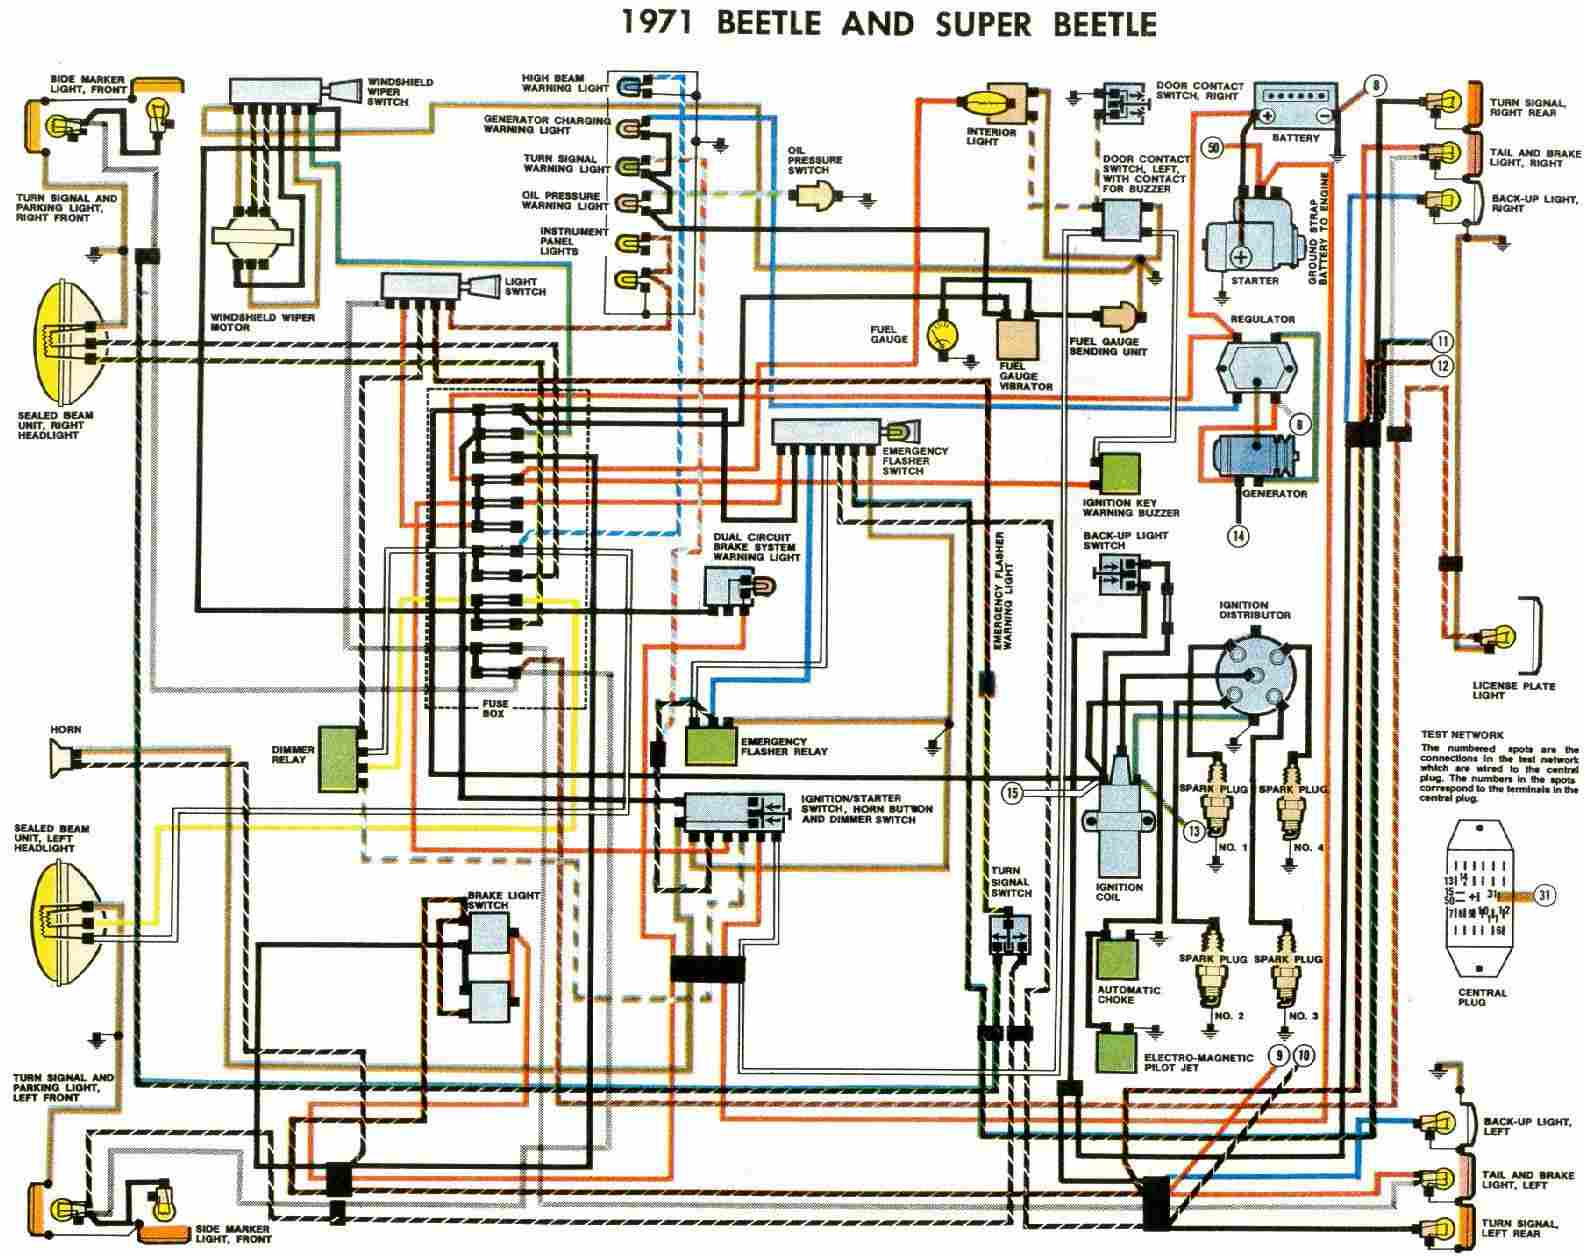 VW+Beetle+and+Super+Beetle+1971+Electrical+Wiring+Diagram southwind motorhome wiring diagram readingrat net wiring diagram 1987 vw cabriolet at gsmx.co